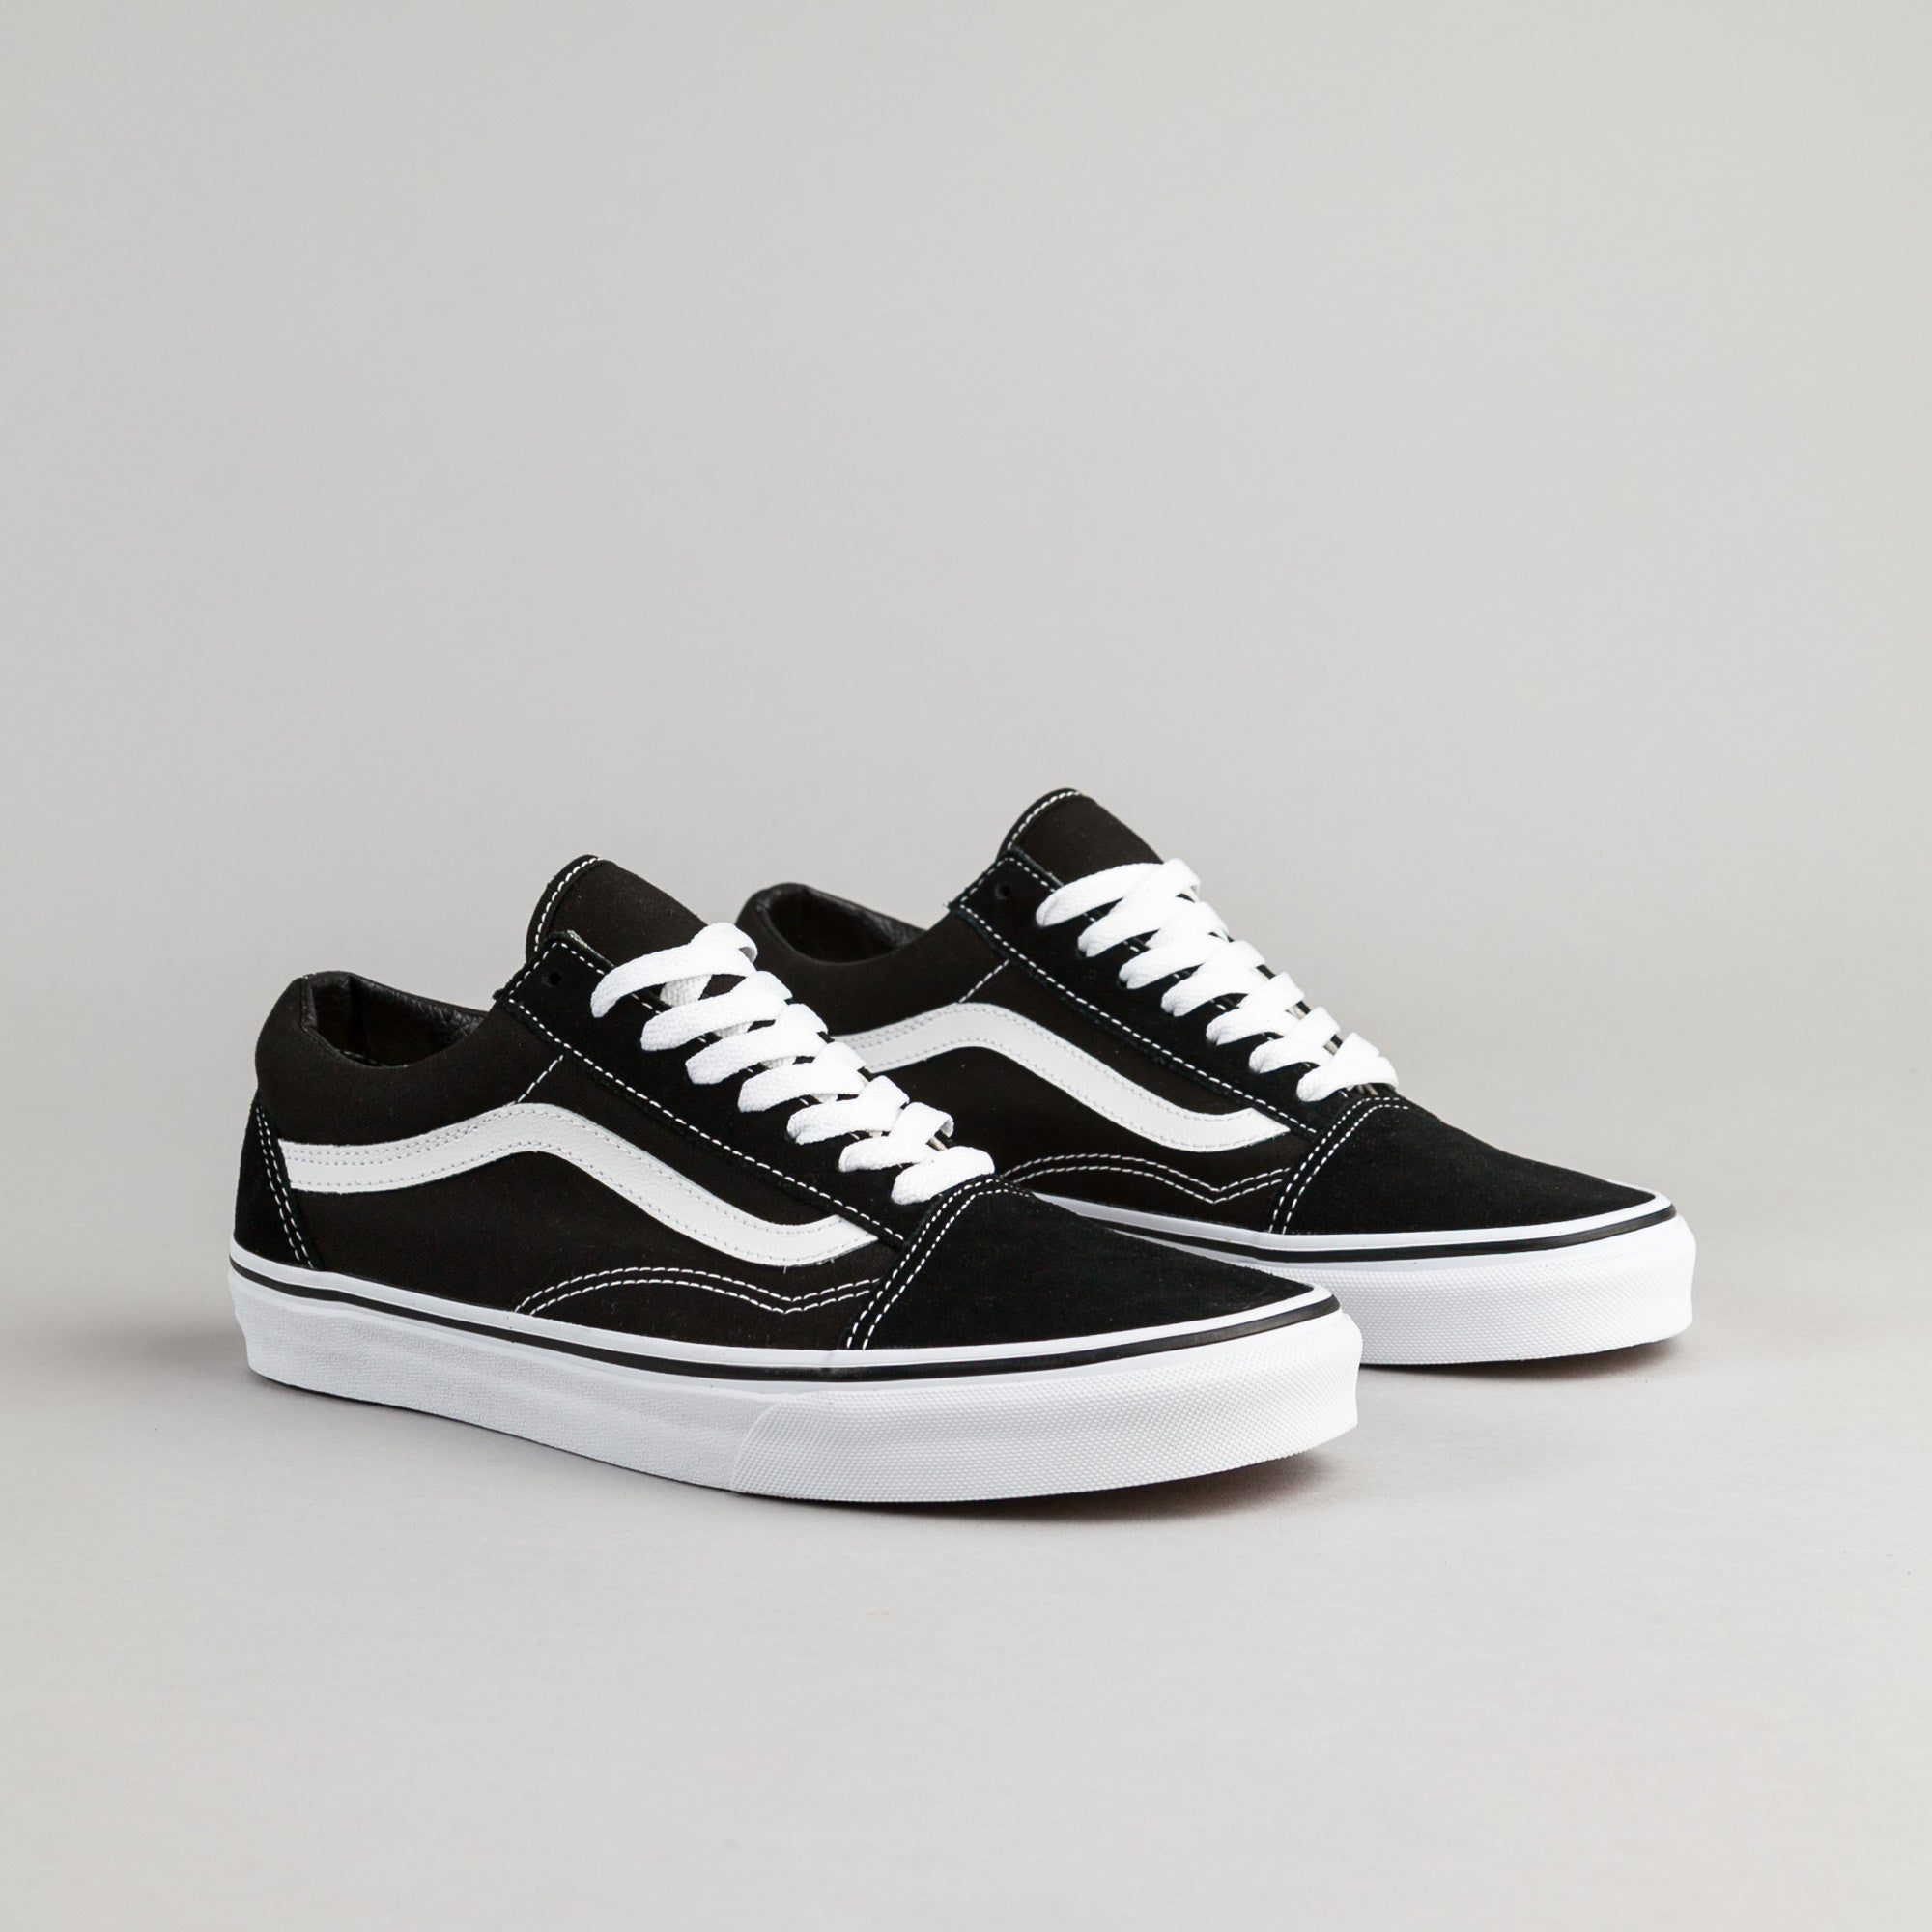 vans old skool shoes black white flatspot. Black Bedroom Furniture Sets. Home Design Ideas